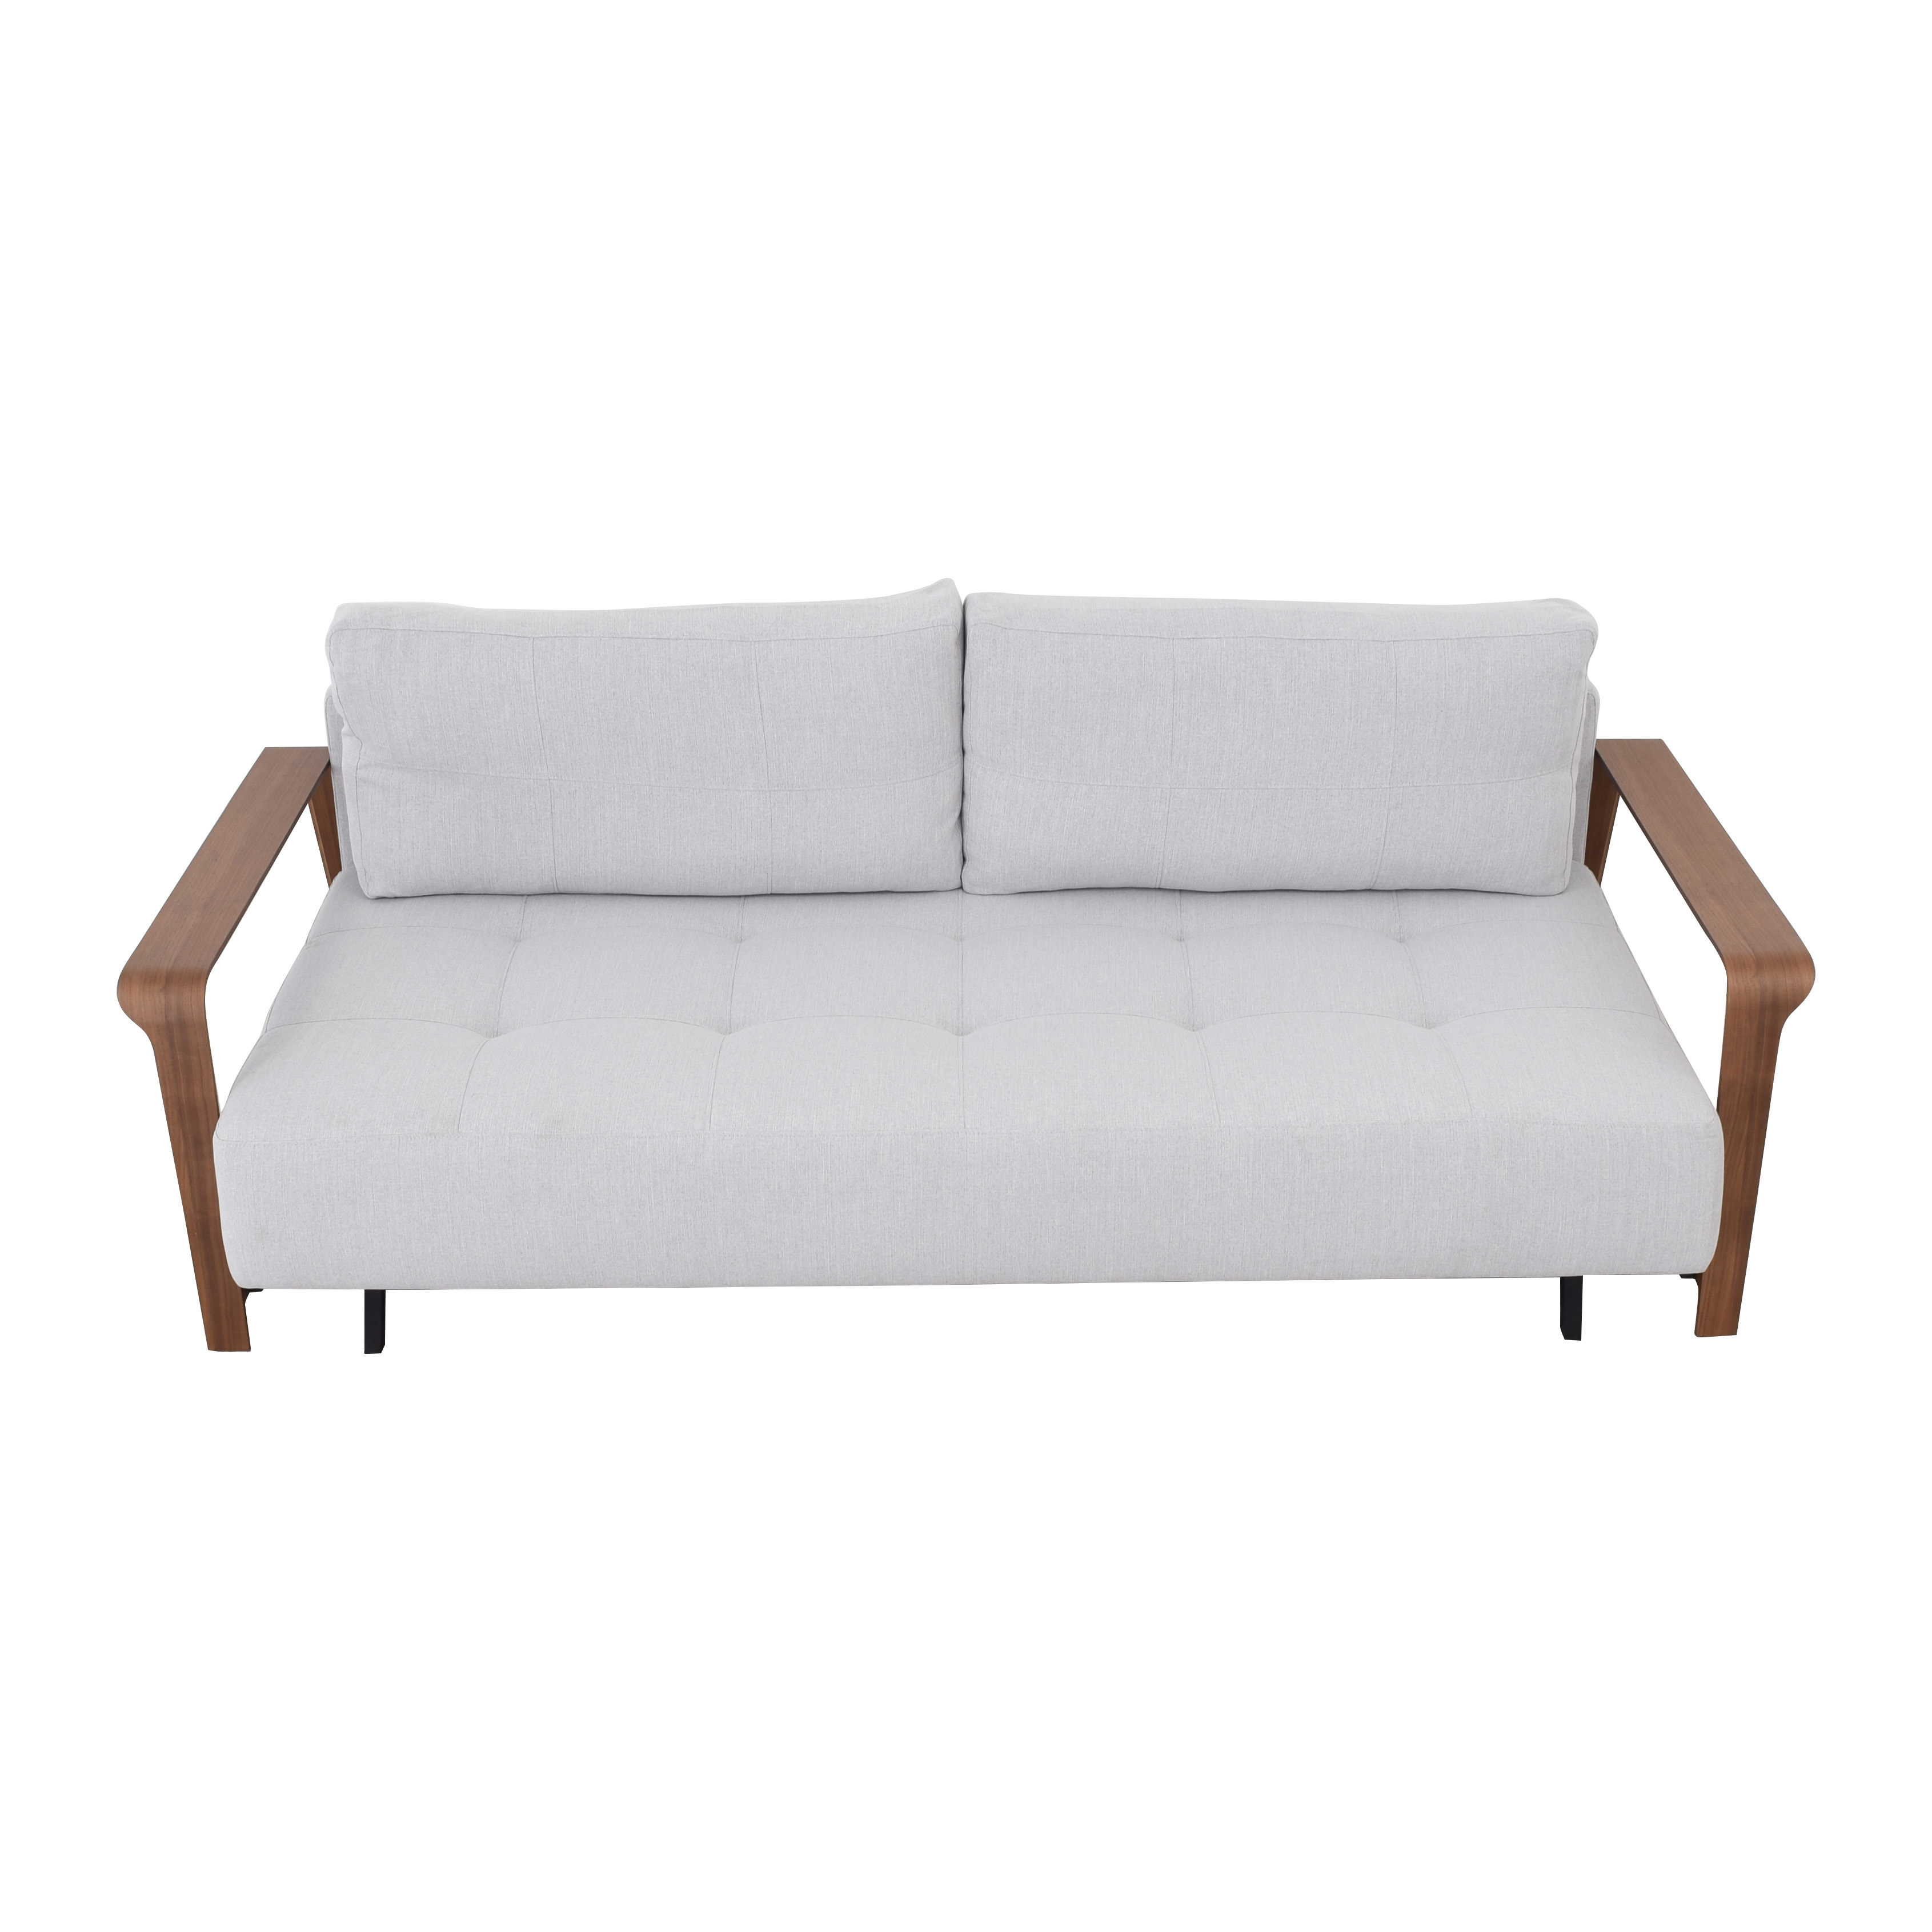 Innovation Living Ran Deluxe Sofa Bed